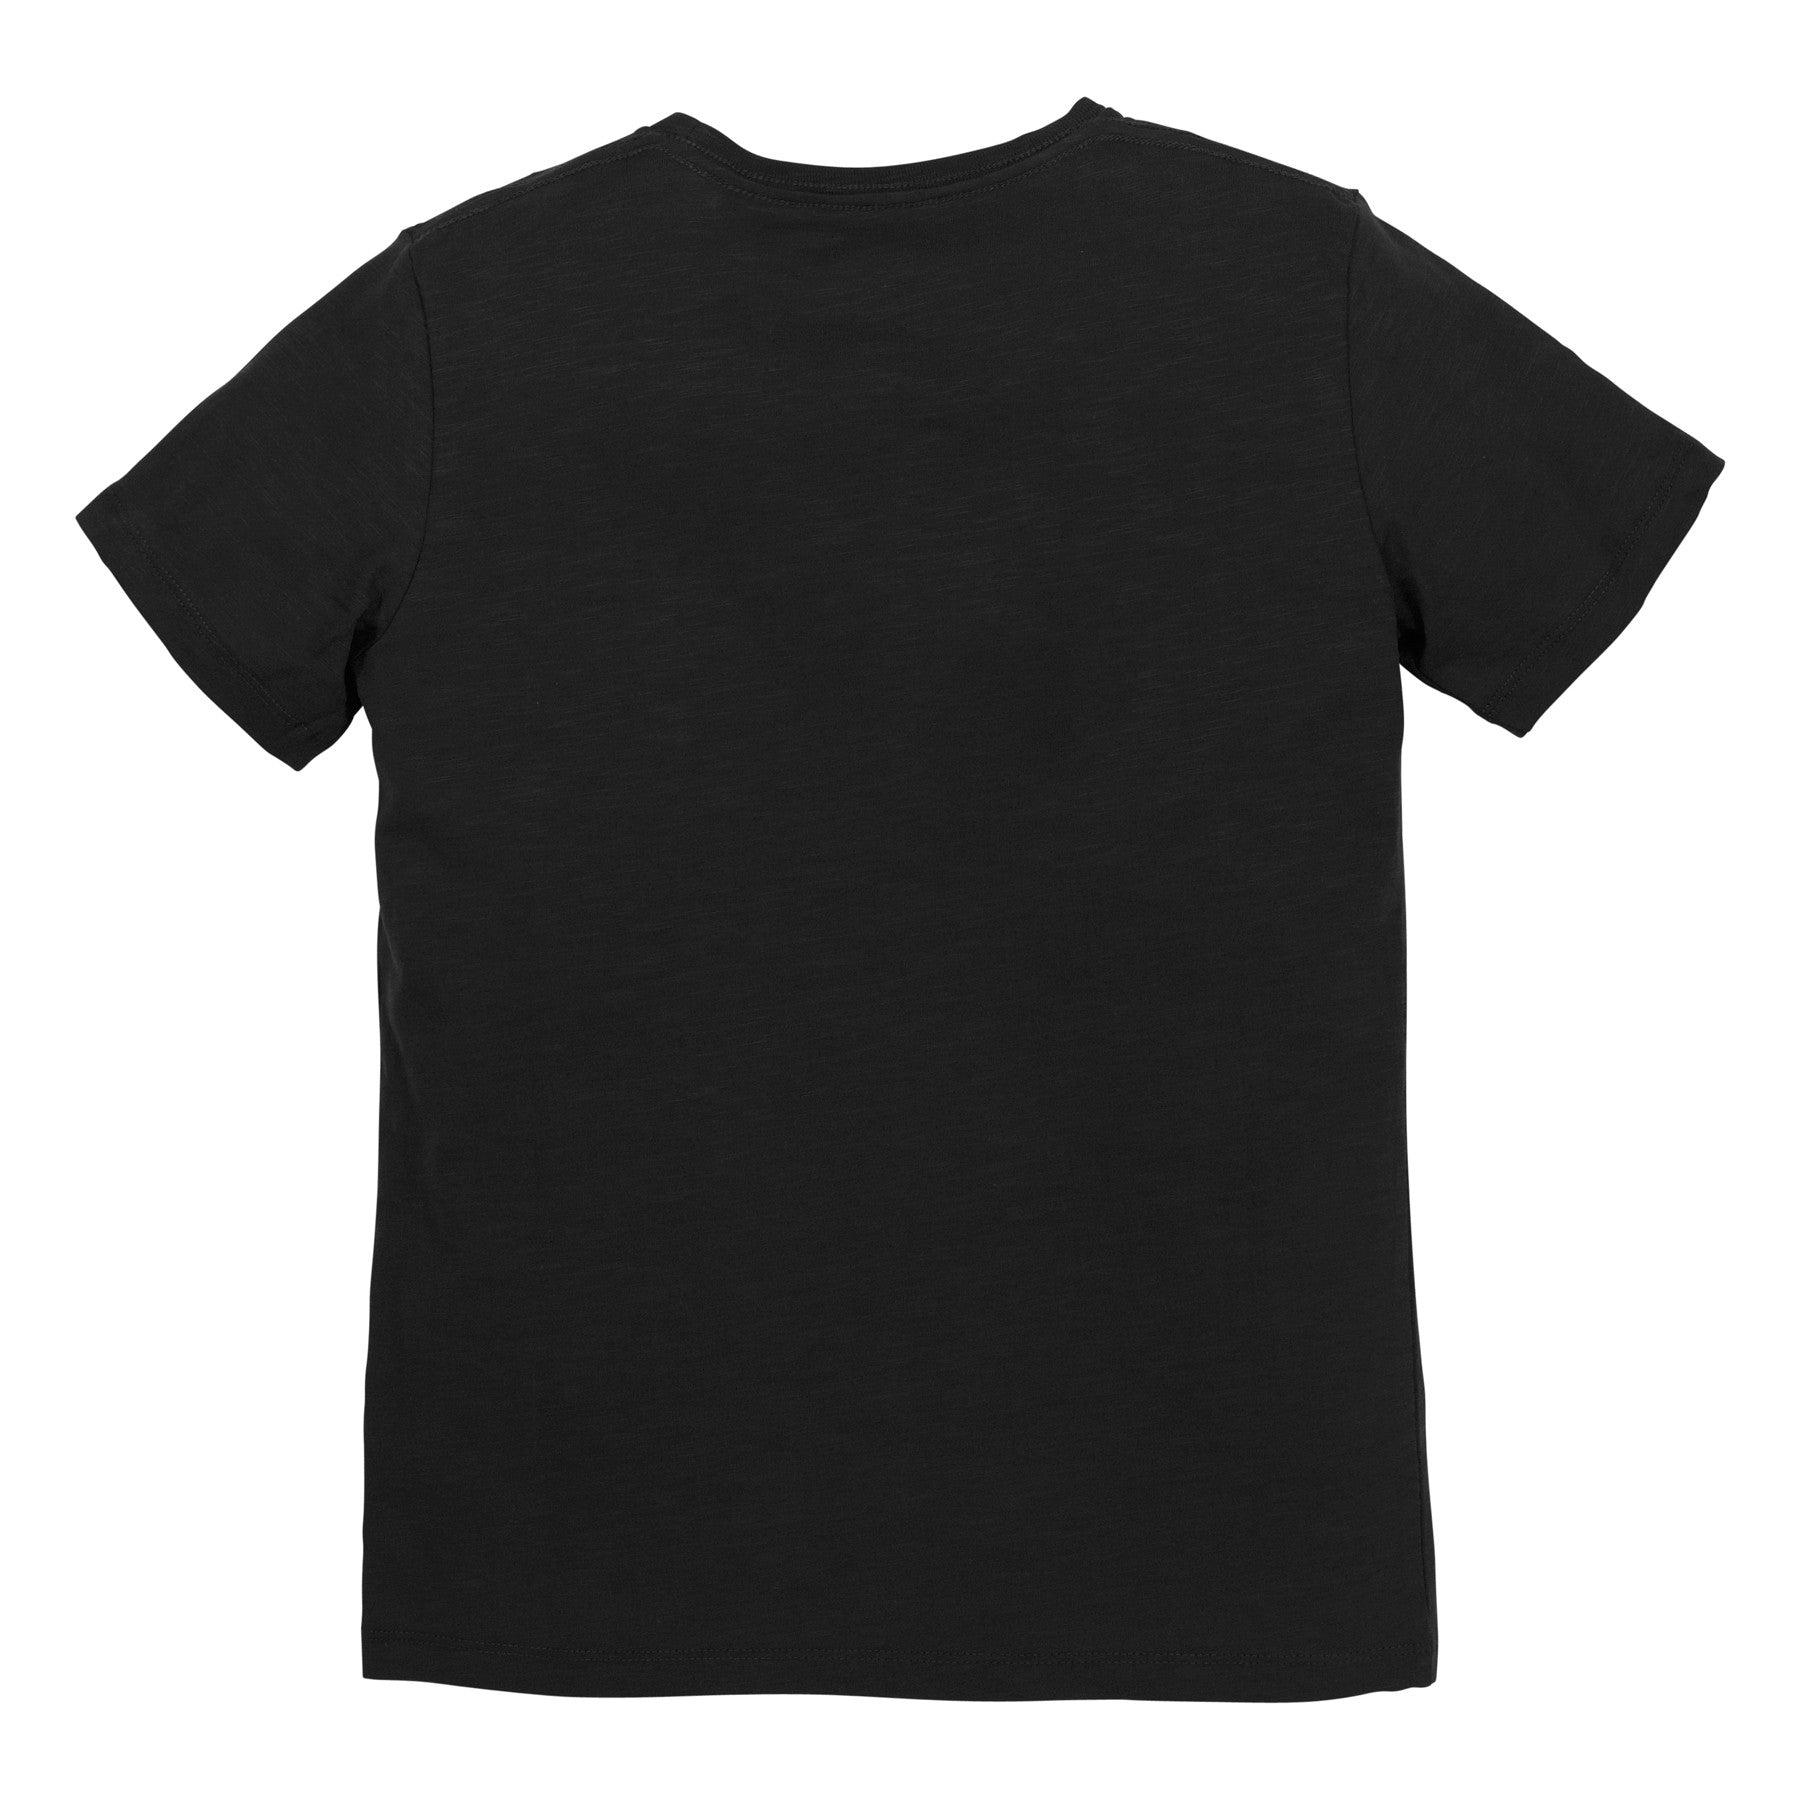 Kids Jack's Base shortsleeve black out tee - Stoked Boardshop  - 2